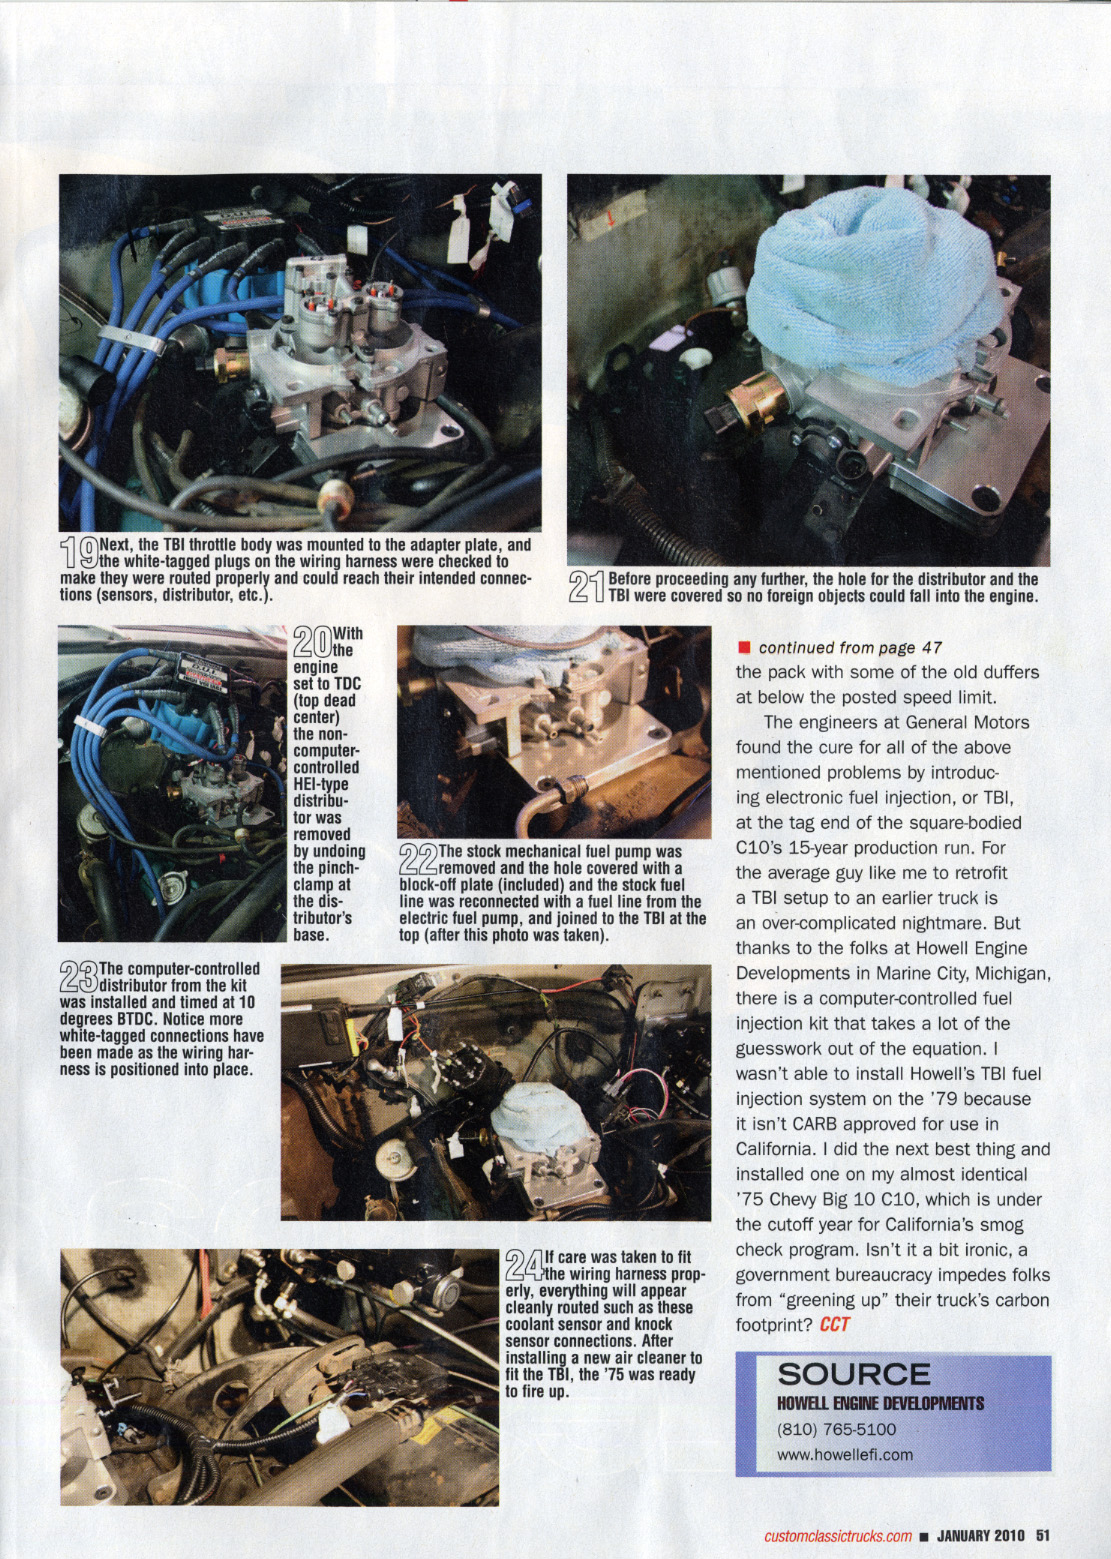 hight resolution of  in your 73 87 this article was from the january 2010 issue of custom classic trucks magazine click the thumbnails below to view the full size image